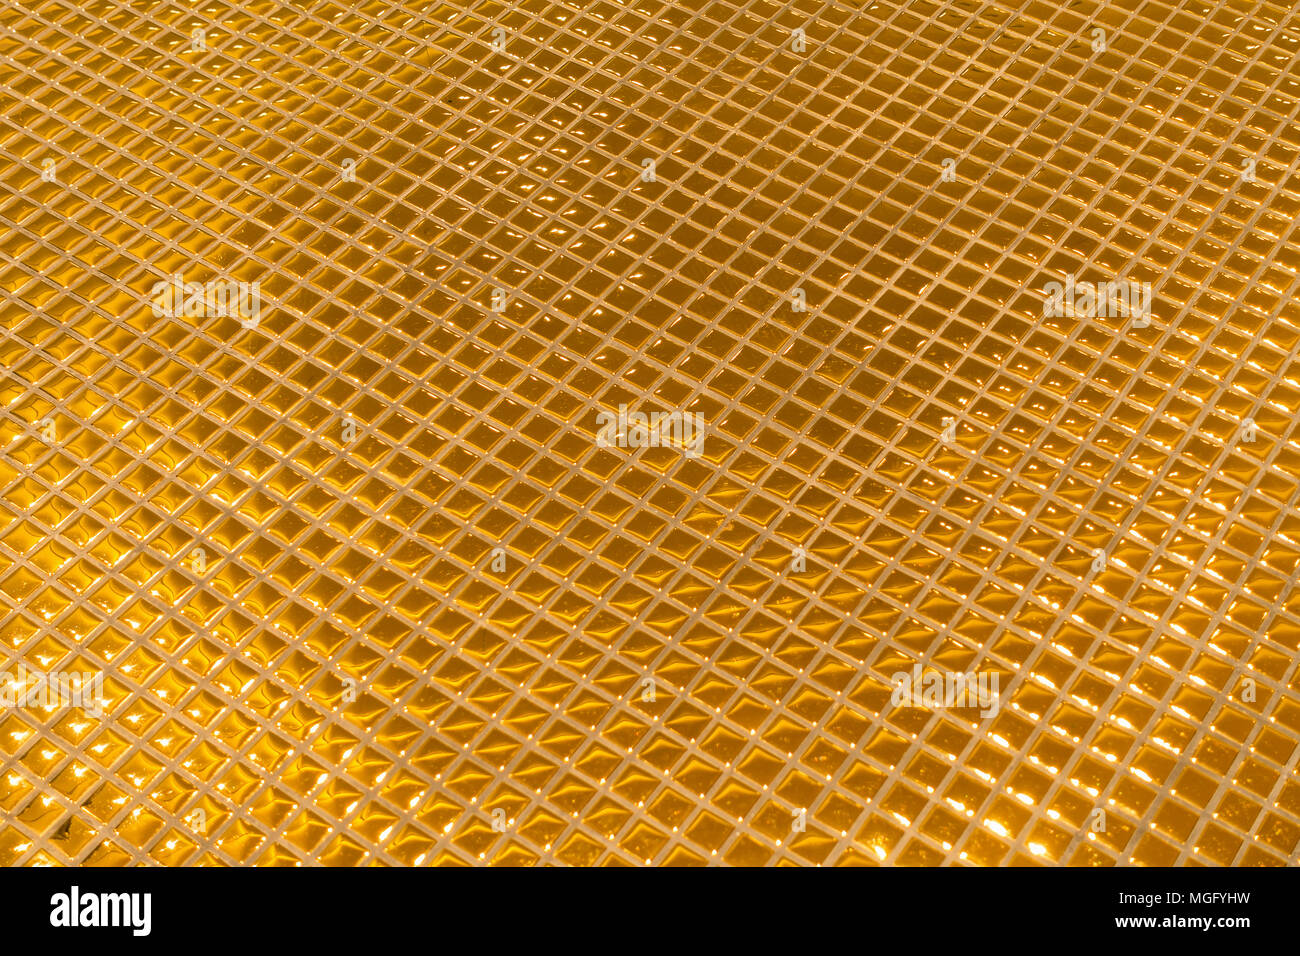 Texture Of Ceramic Mosaic Flooring Tiles Abstract Background